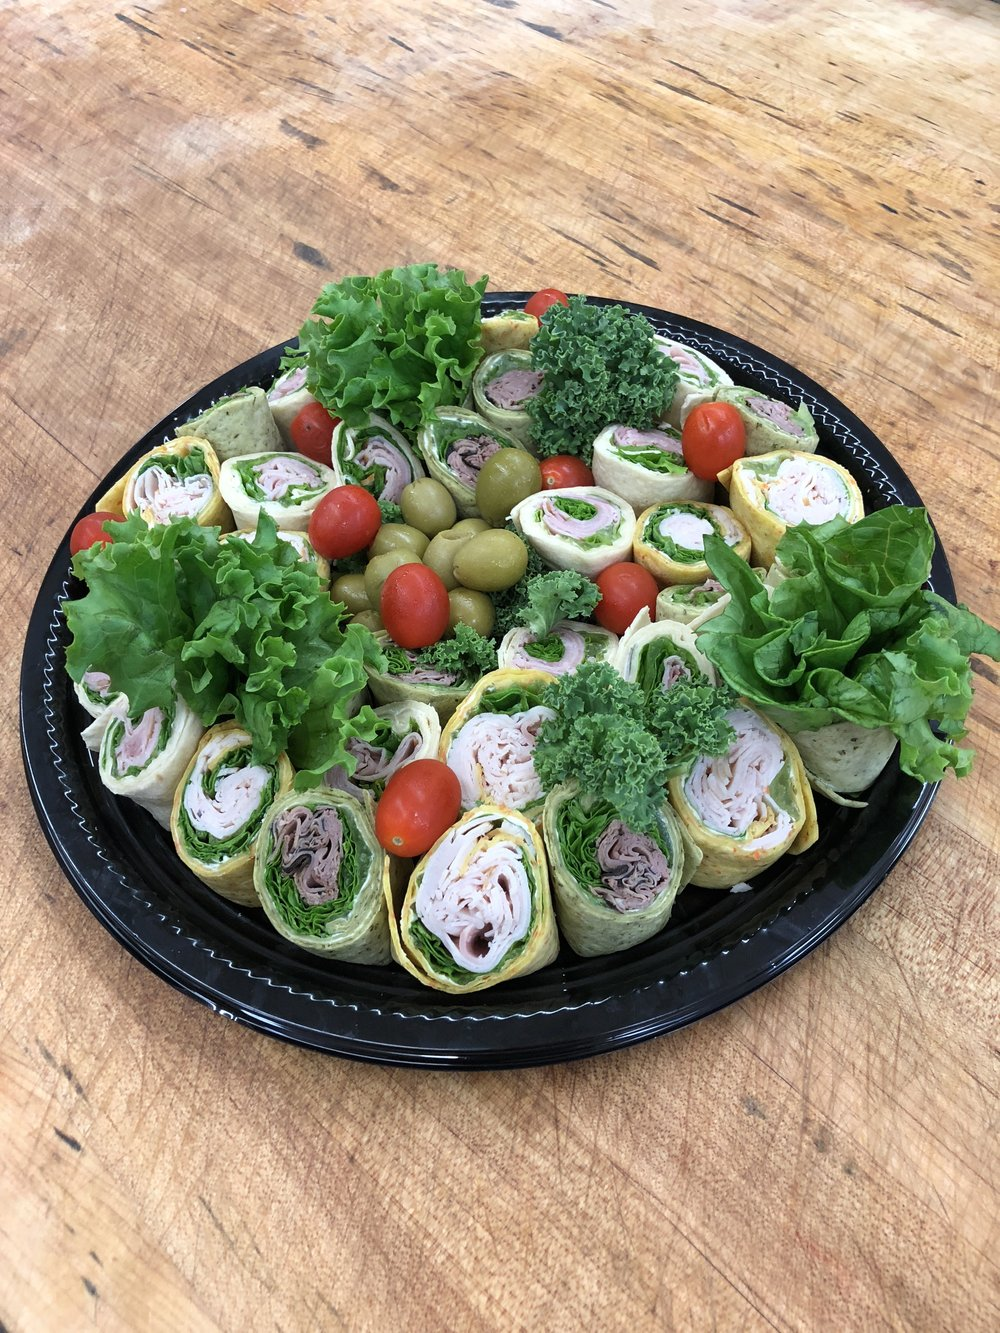 Party Platters - Tortilla Wrap - $35Meat & Cheese - $40Cold Cut Platter - $60Please Call about Ordering - (604) 438-1190